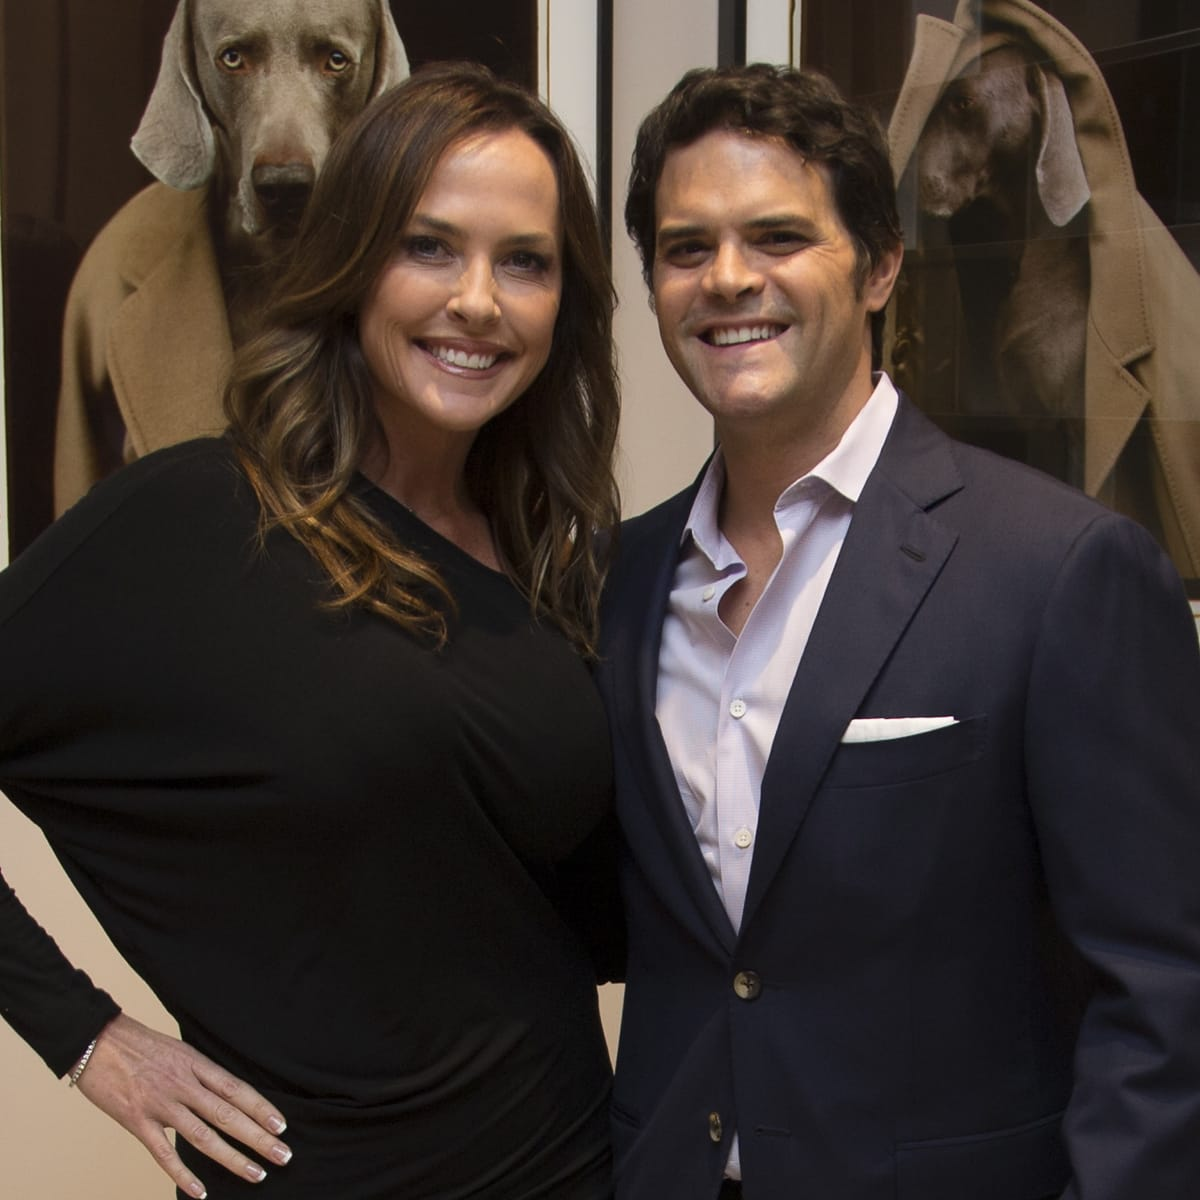 Max Mara William Wegman event Richelle Willis, Jeff Ball